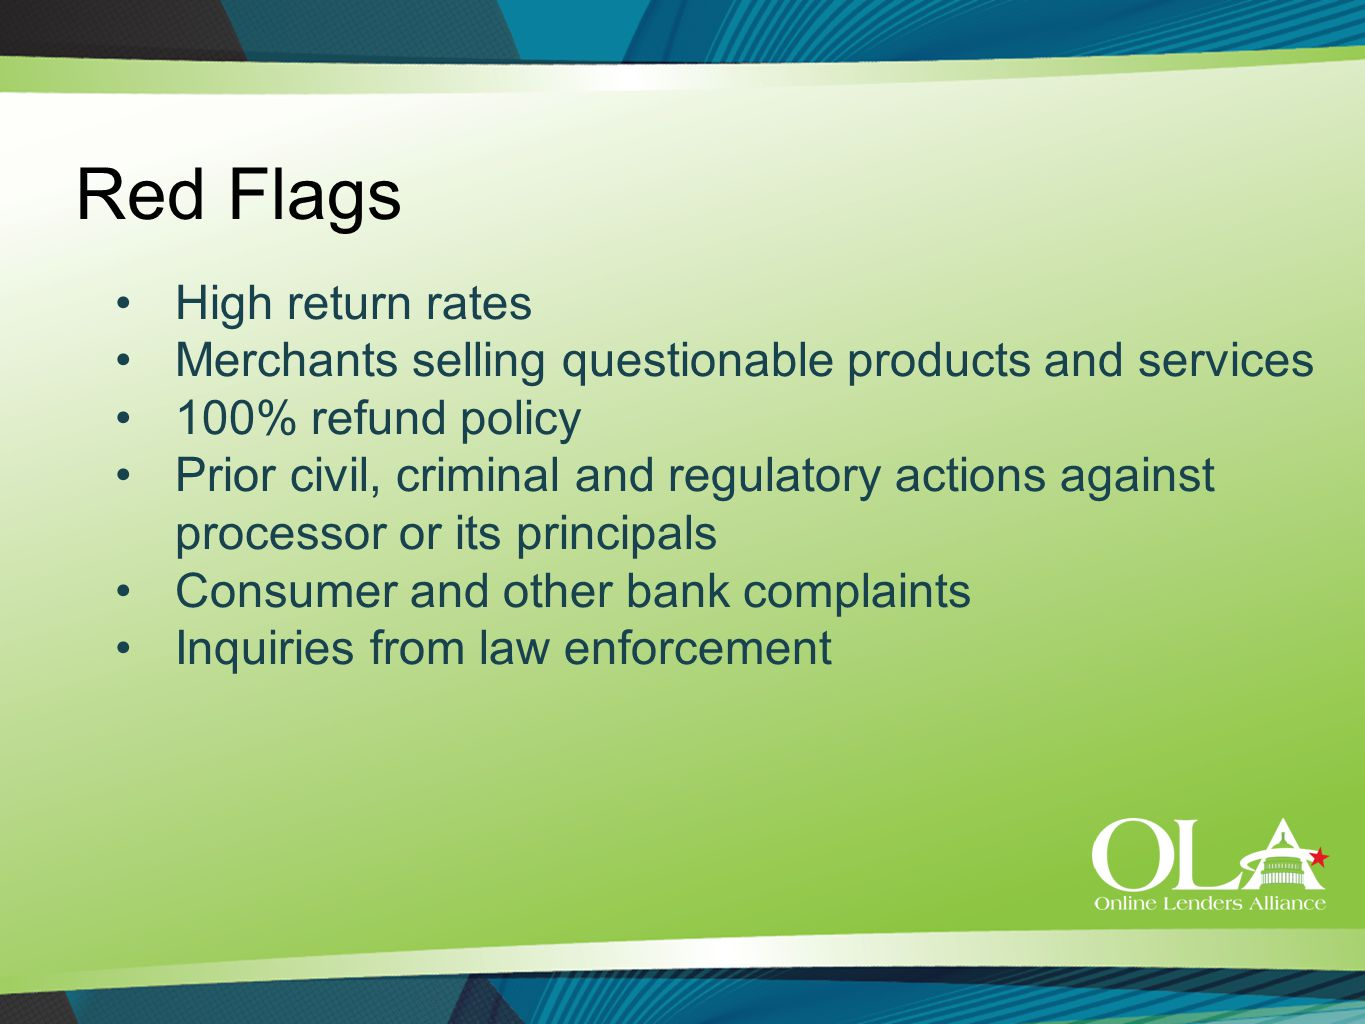 Red Flags High return rates Merchants selling questionable products and services 100% refund policy Prior civil, criminal and regulatory actions again